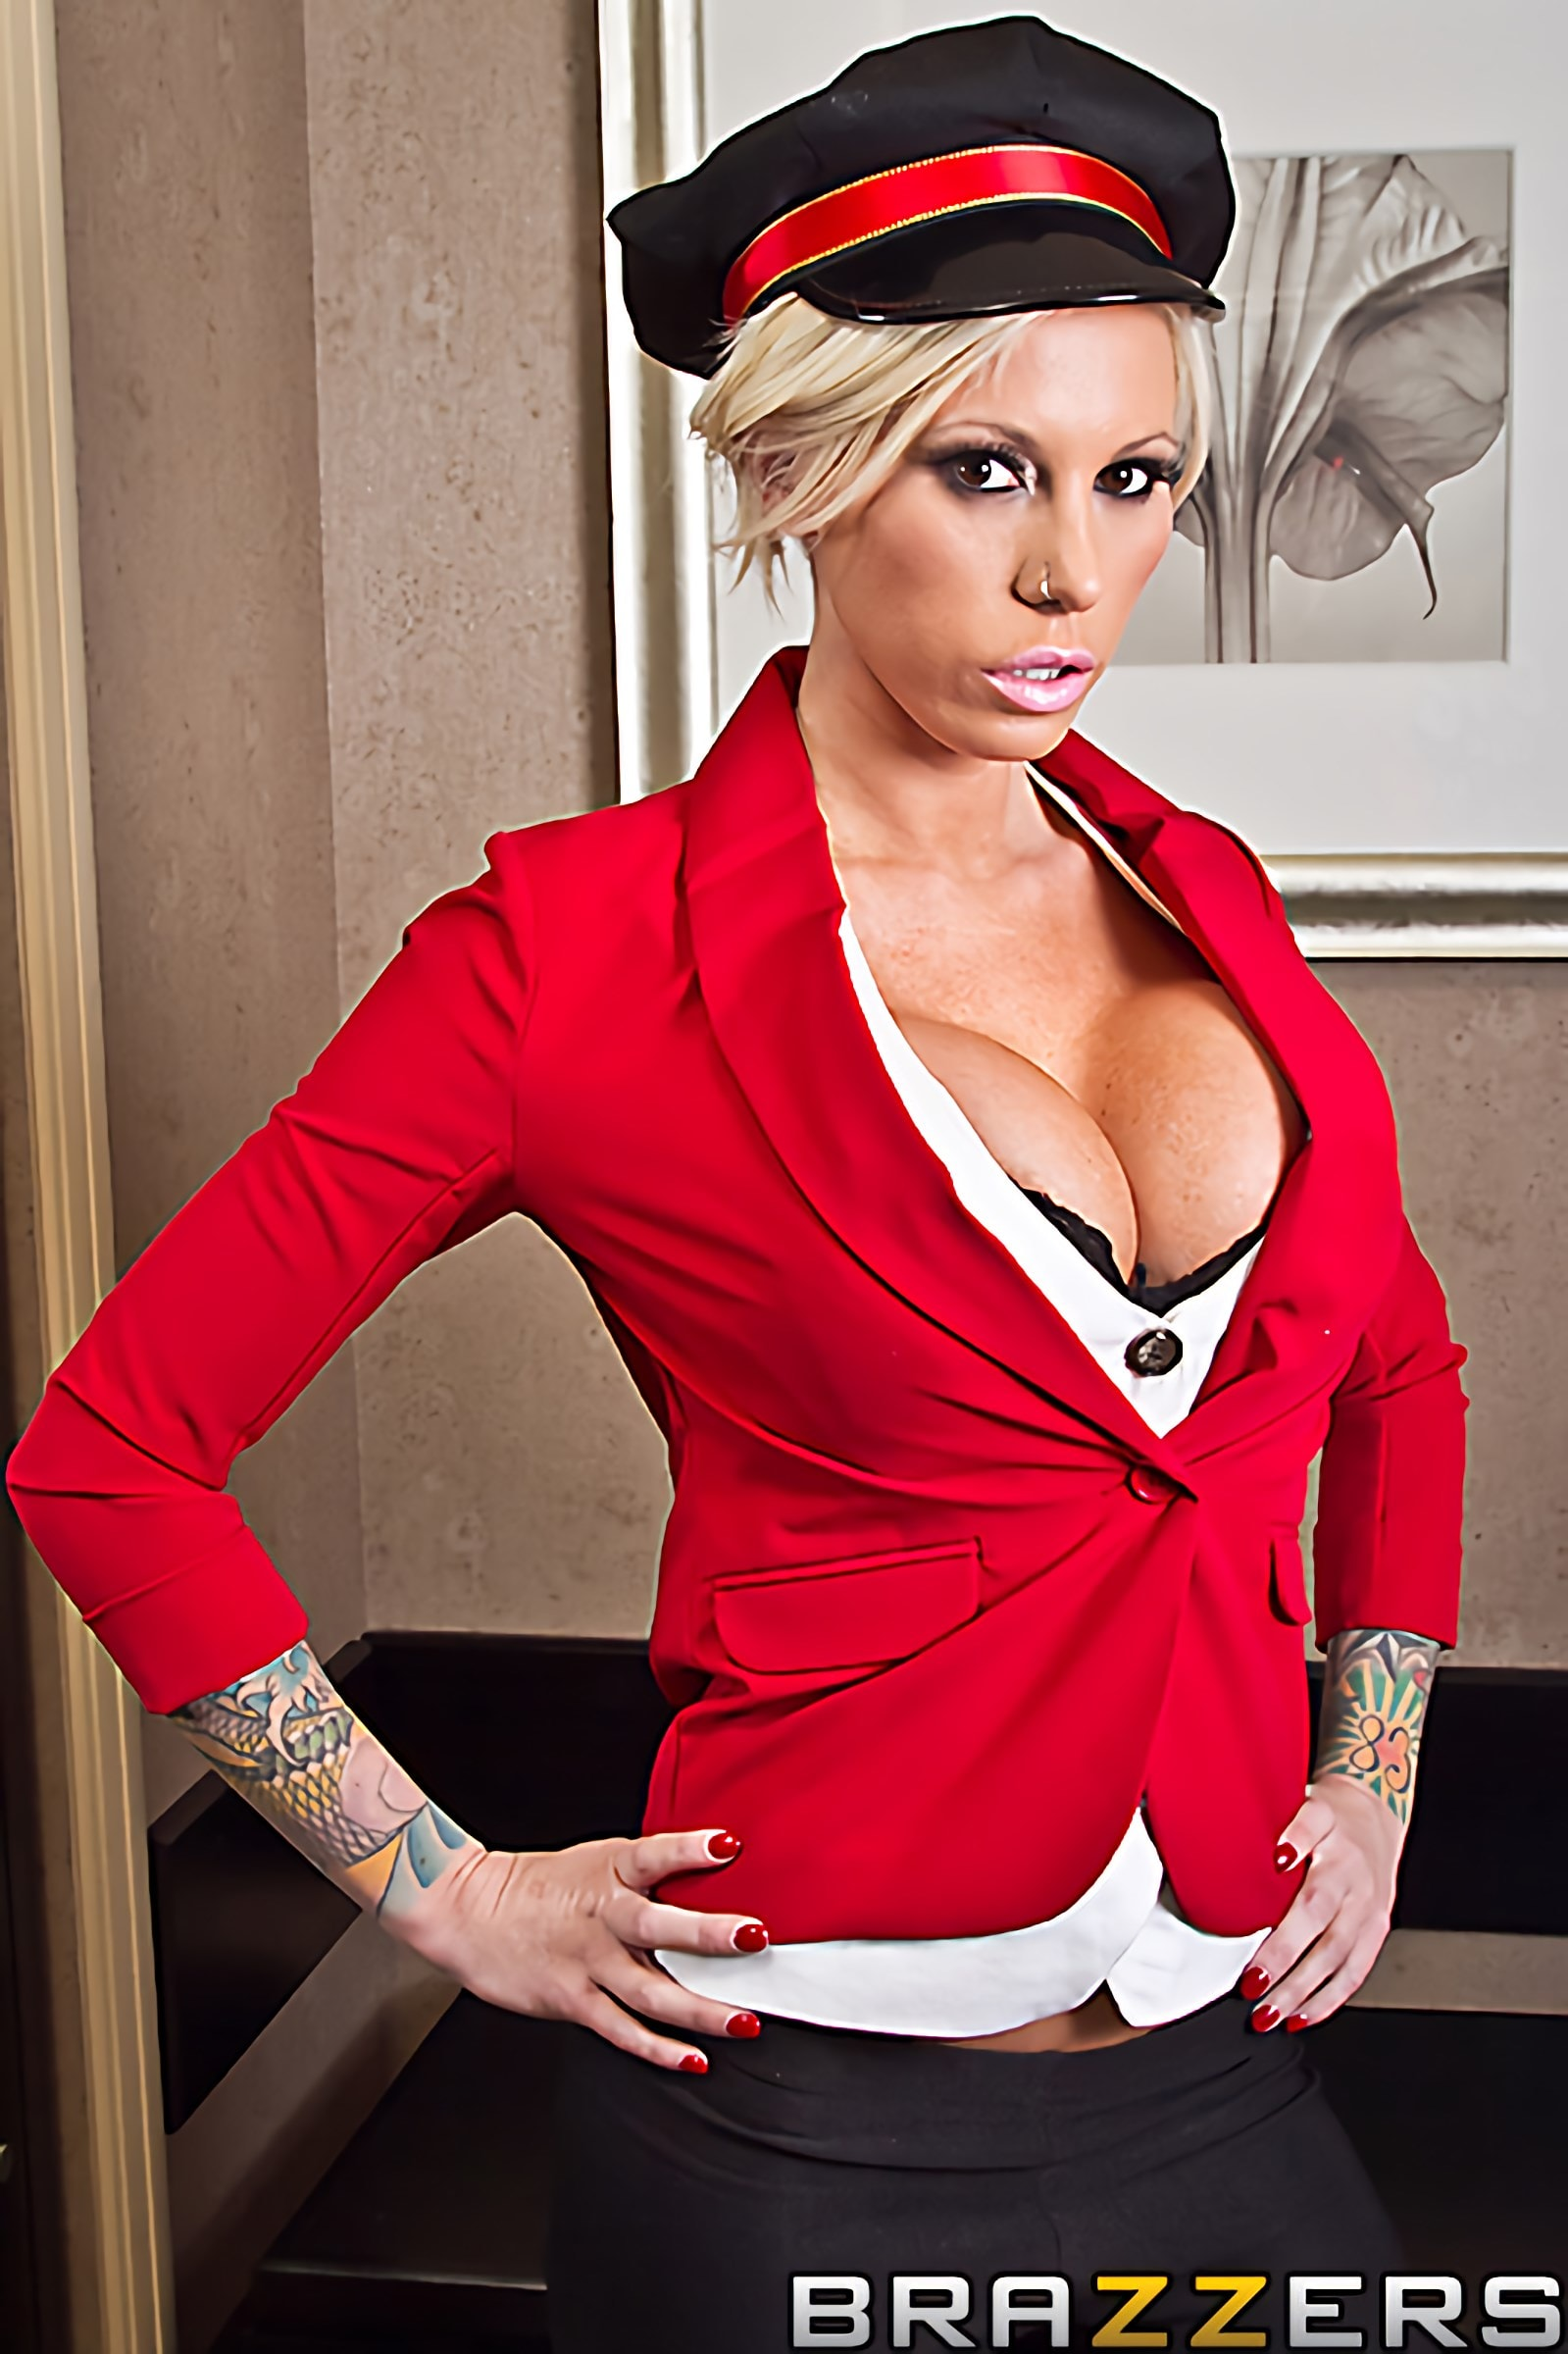 Brazzers 'Bagging the Bellgirl' starring Lolly Ink (Photo 1)